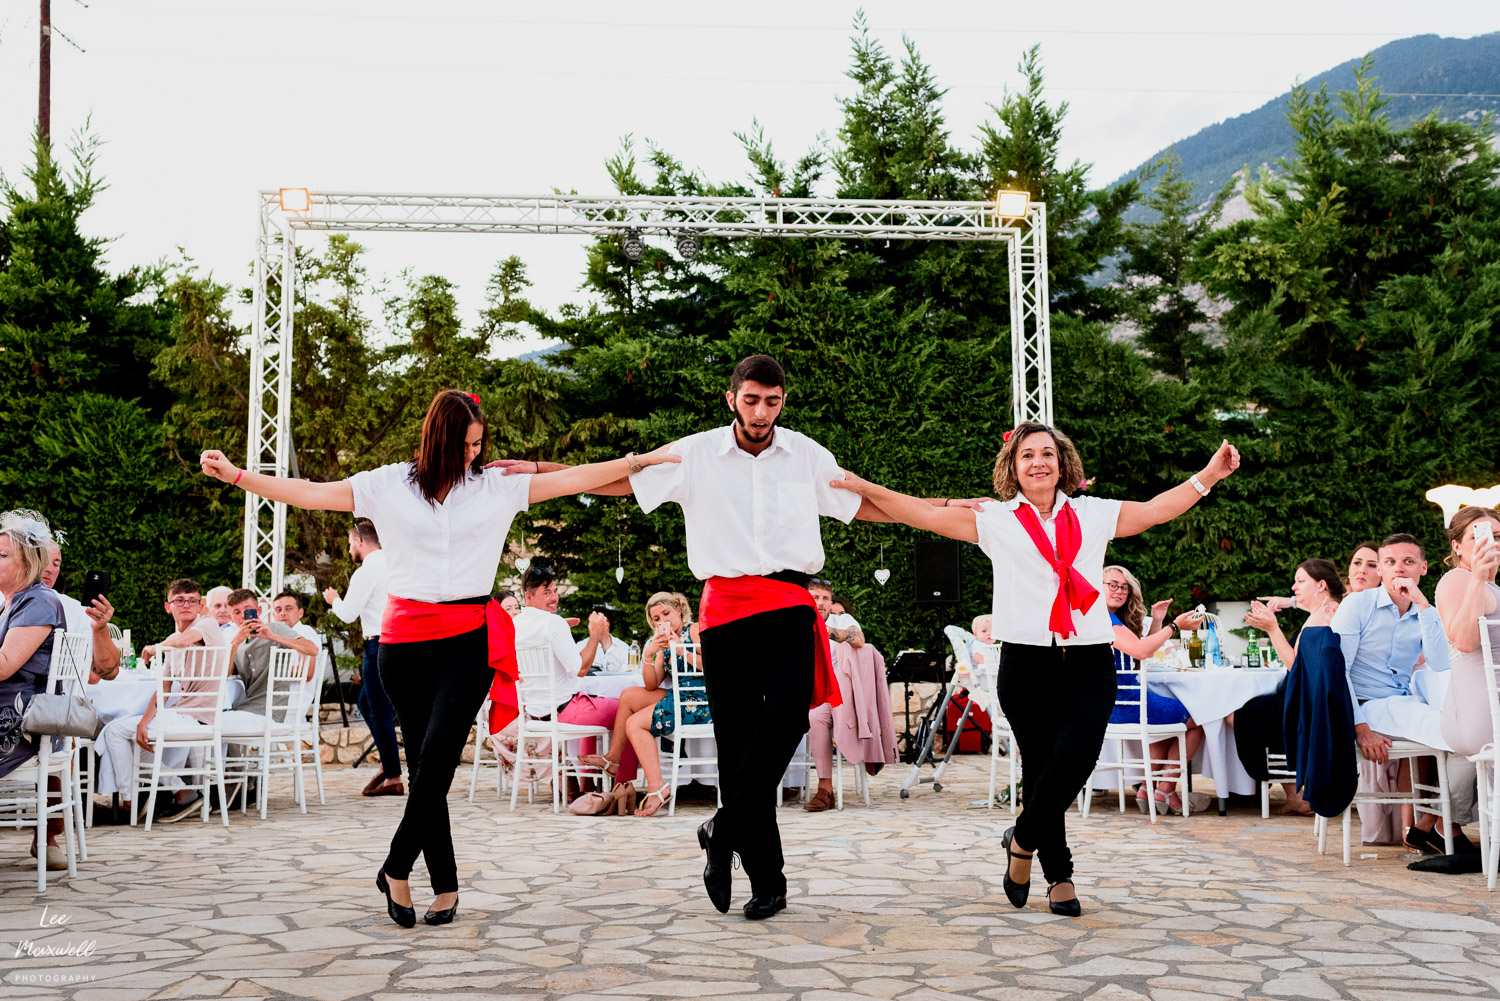 Greek dancing at wedding